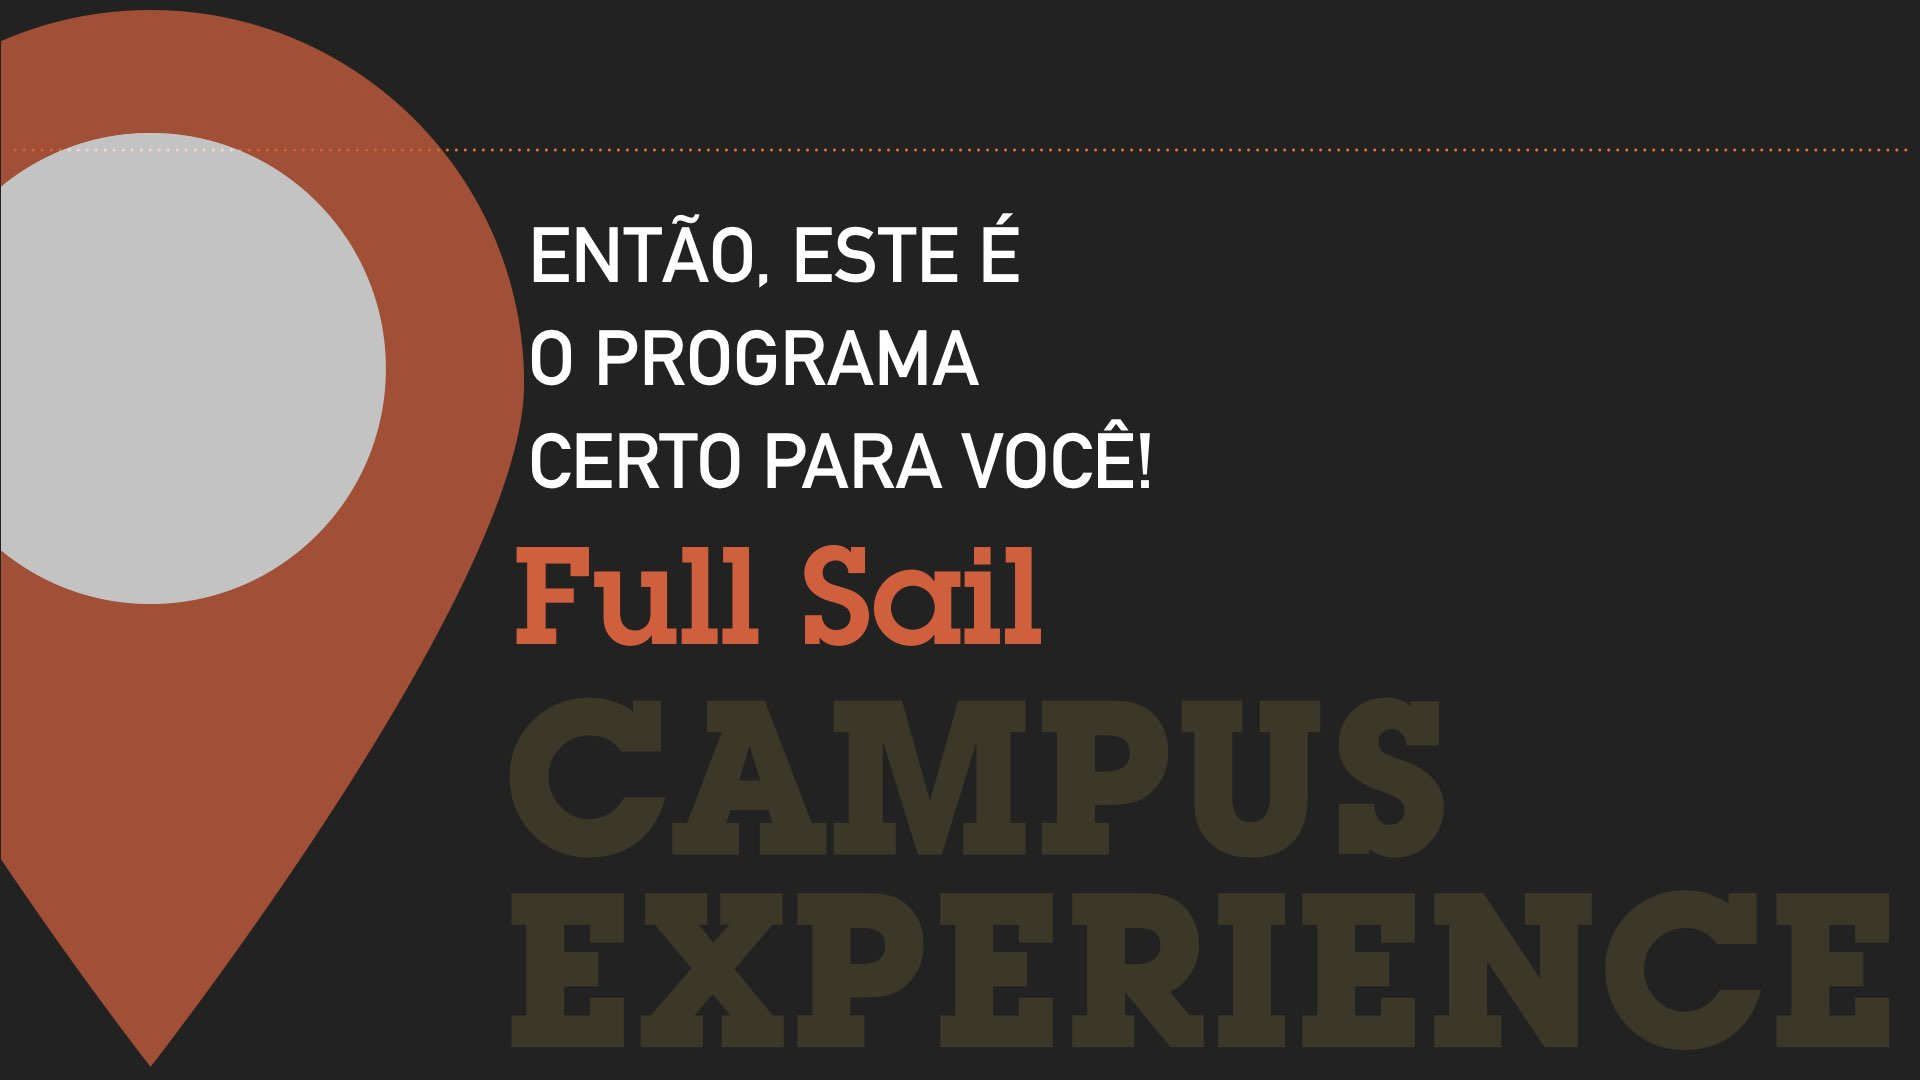 CAMPUS EXPERIENCE ENTERTAINMENT 7